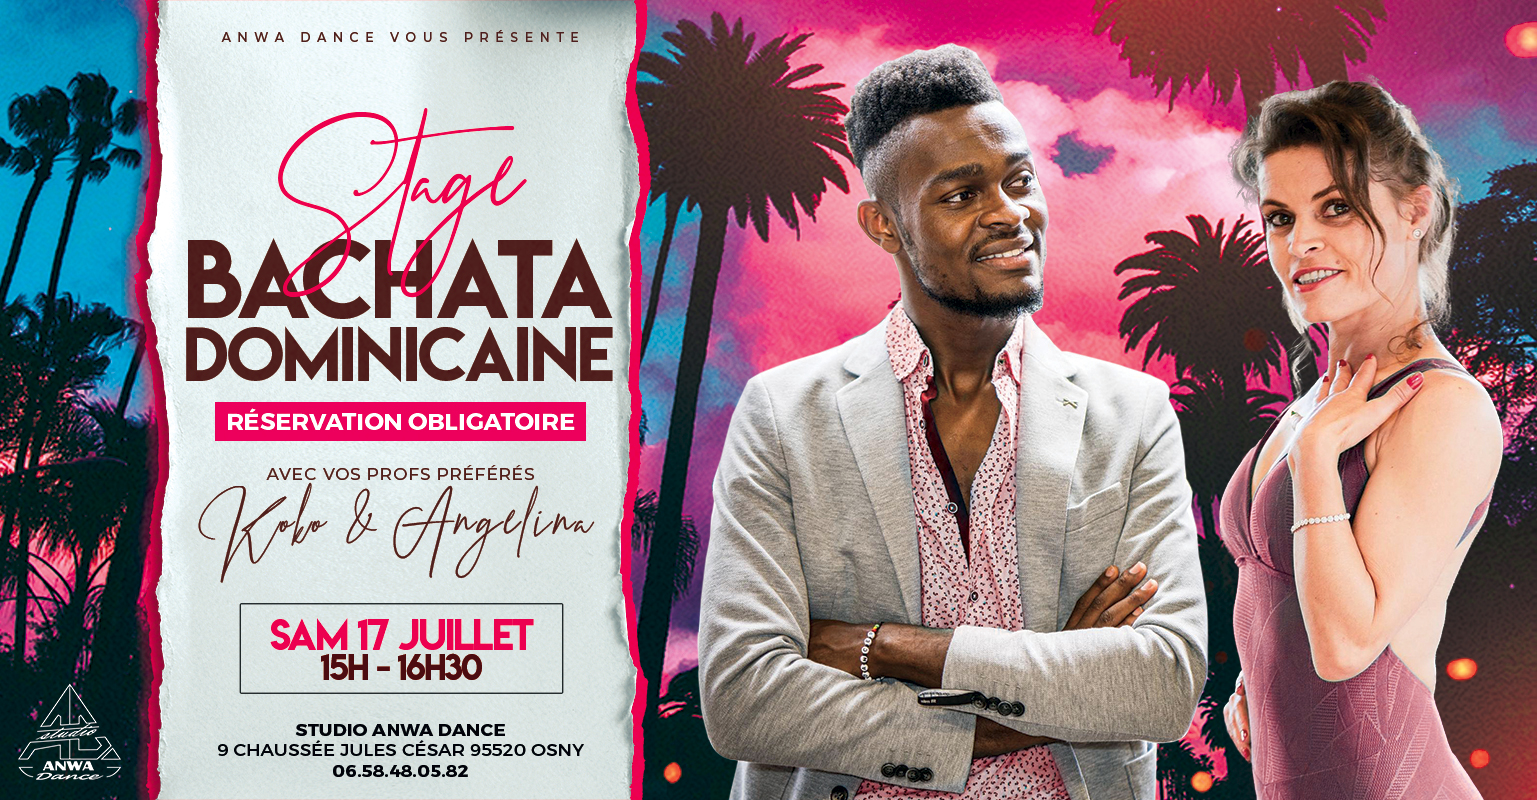 Stage bachata dominicaine